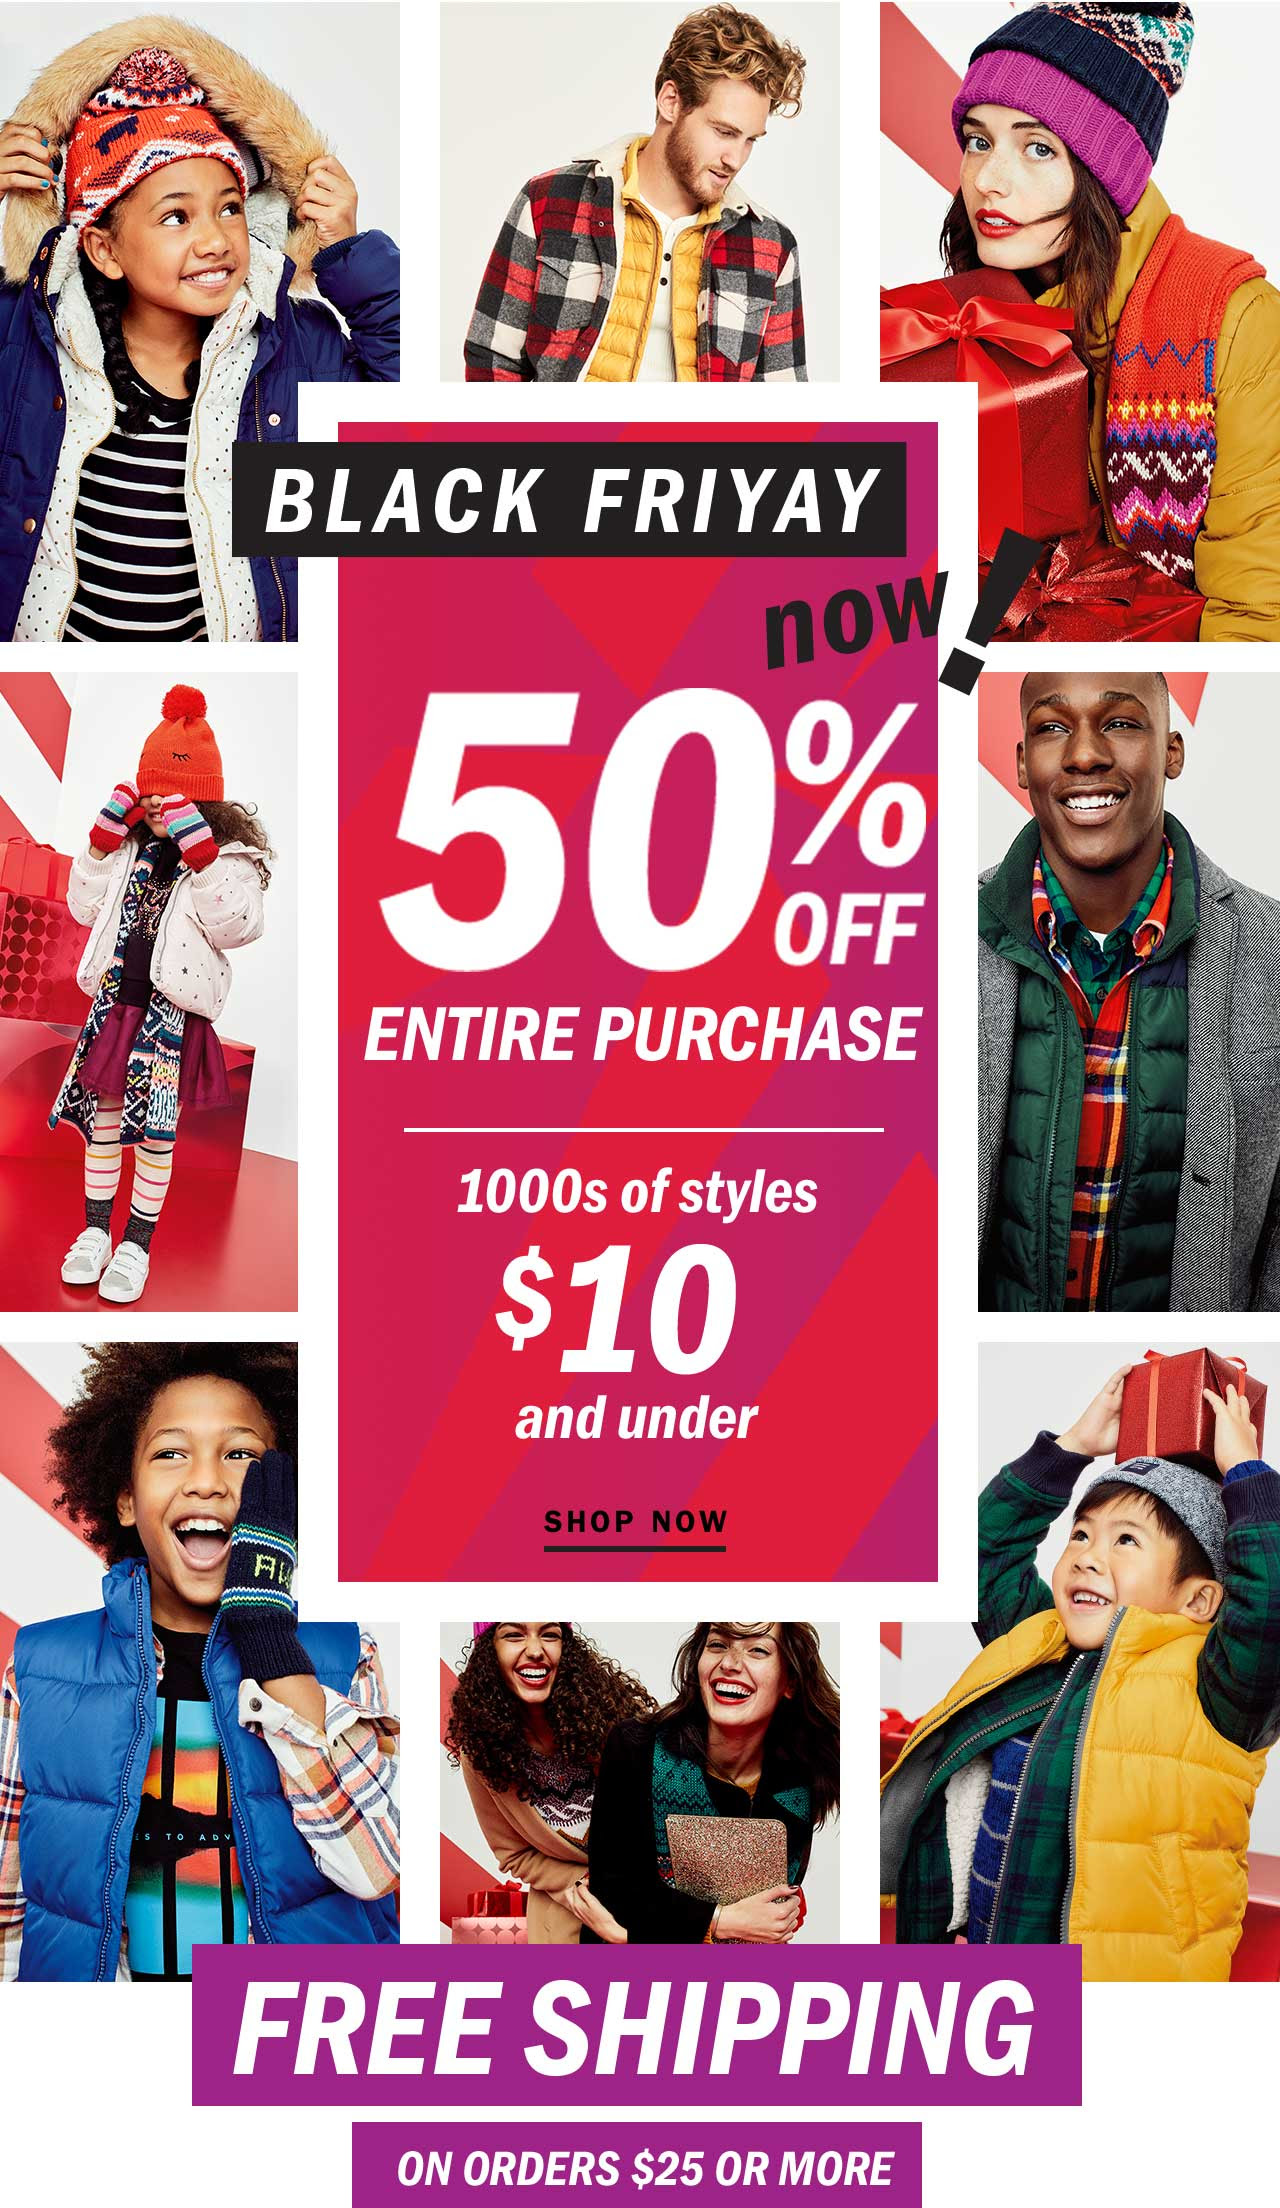 50% OFF ENTIRE PURCHASE   1000s of styles $10 and under   SHOP NOW   FREE SHIPPING ON ORDERS $25 OR MORE